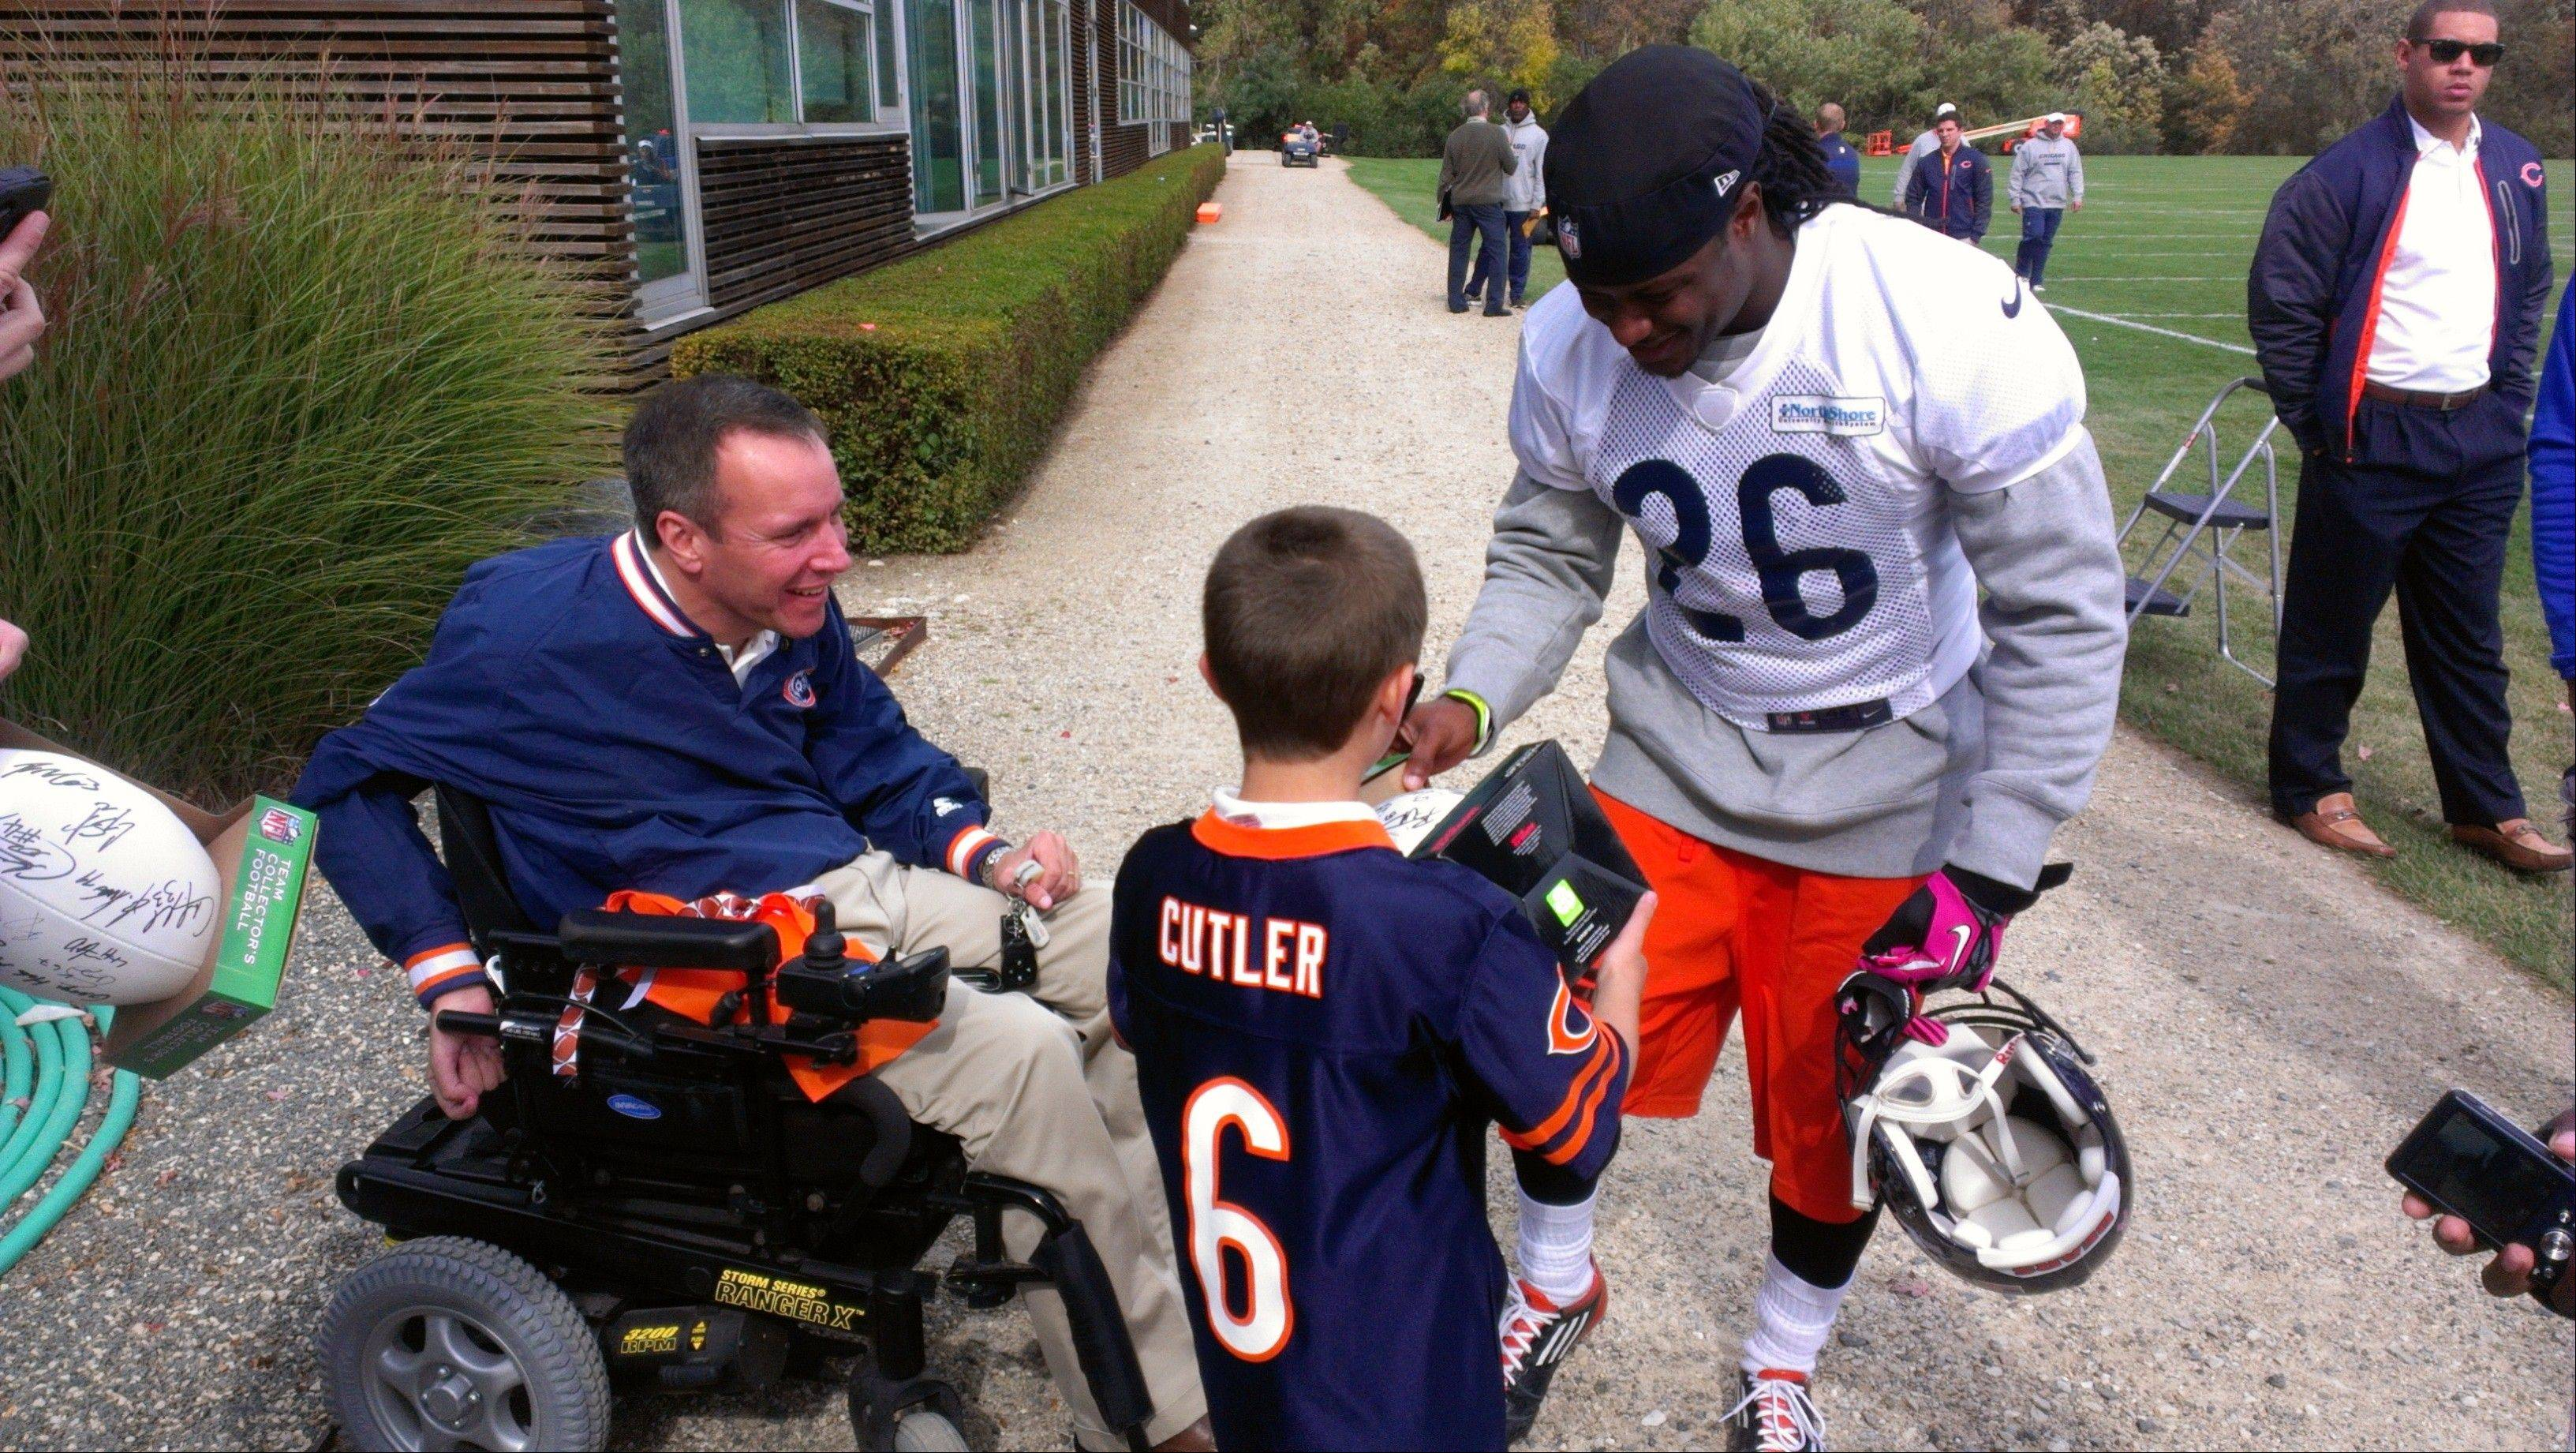 Bears cornerback Tim Jennings visits with Steve Herbst and his son, Jack, of Palatine. Injured in a football practice 32 years ago, Herbst is on the board of the Gridiron Alliance charity, which advocates for athletes with catastrophic injuries.